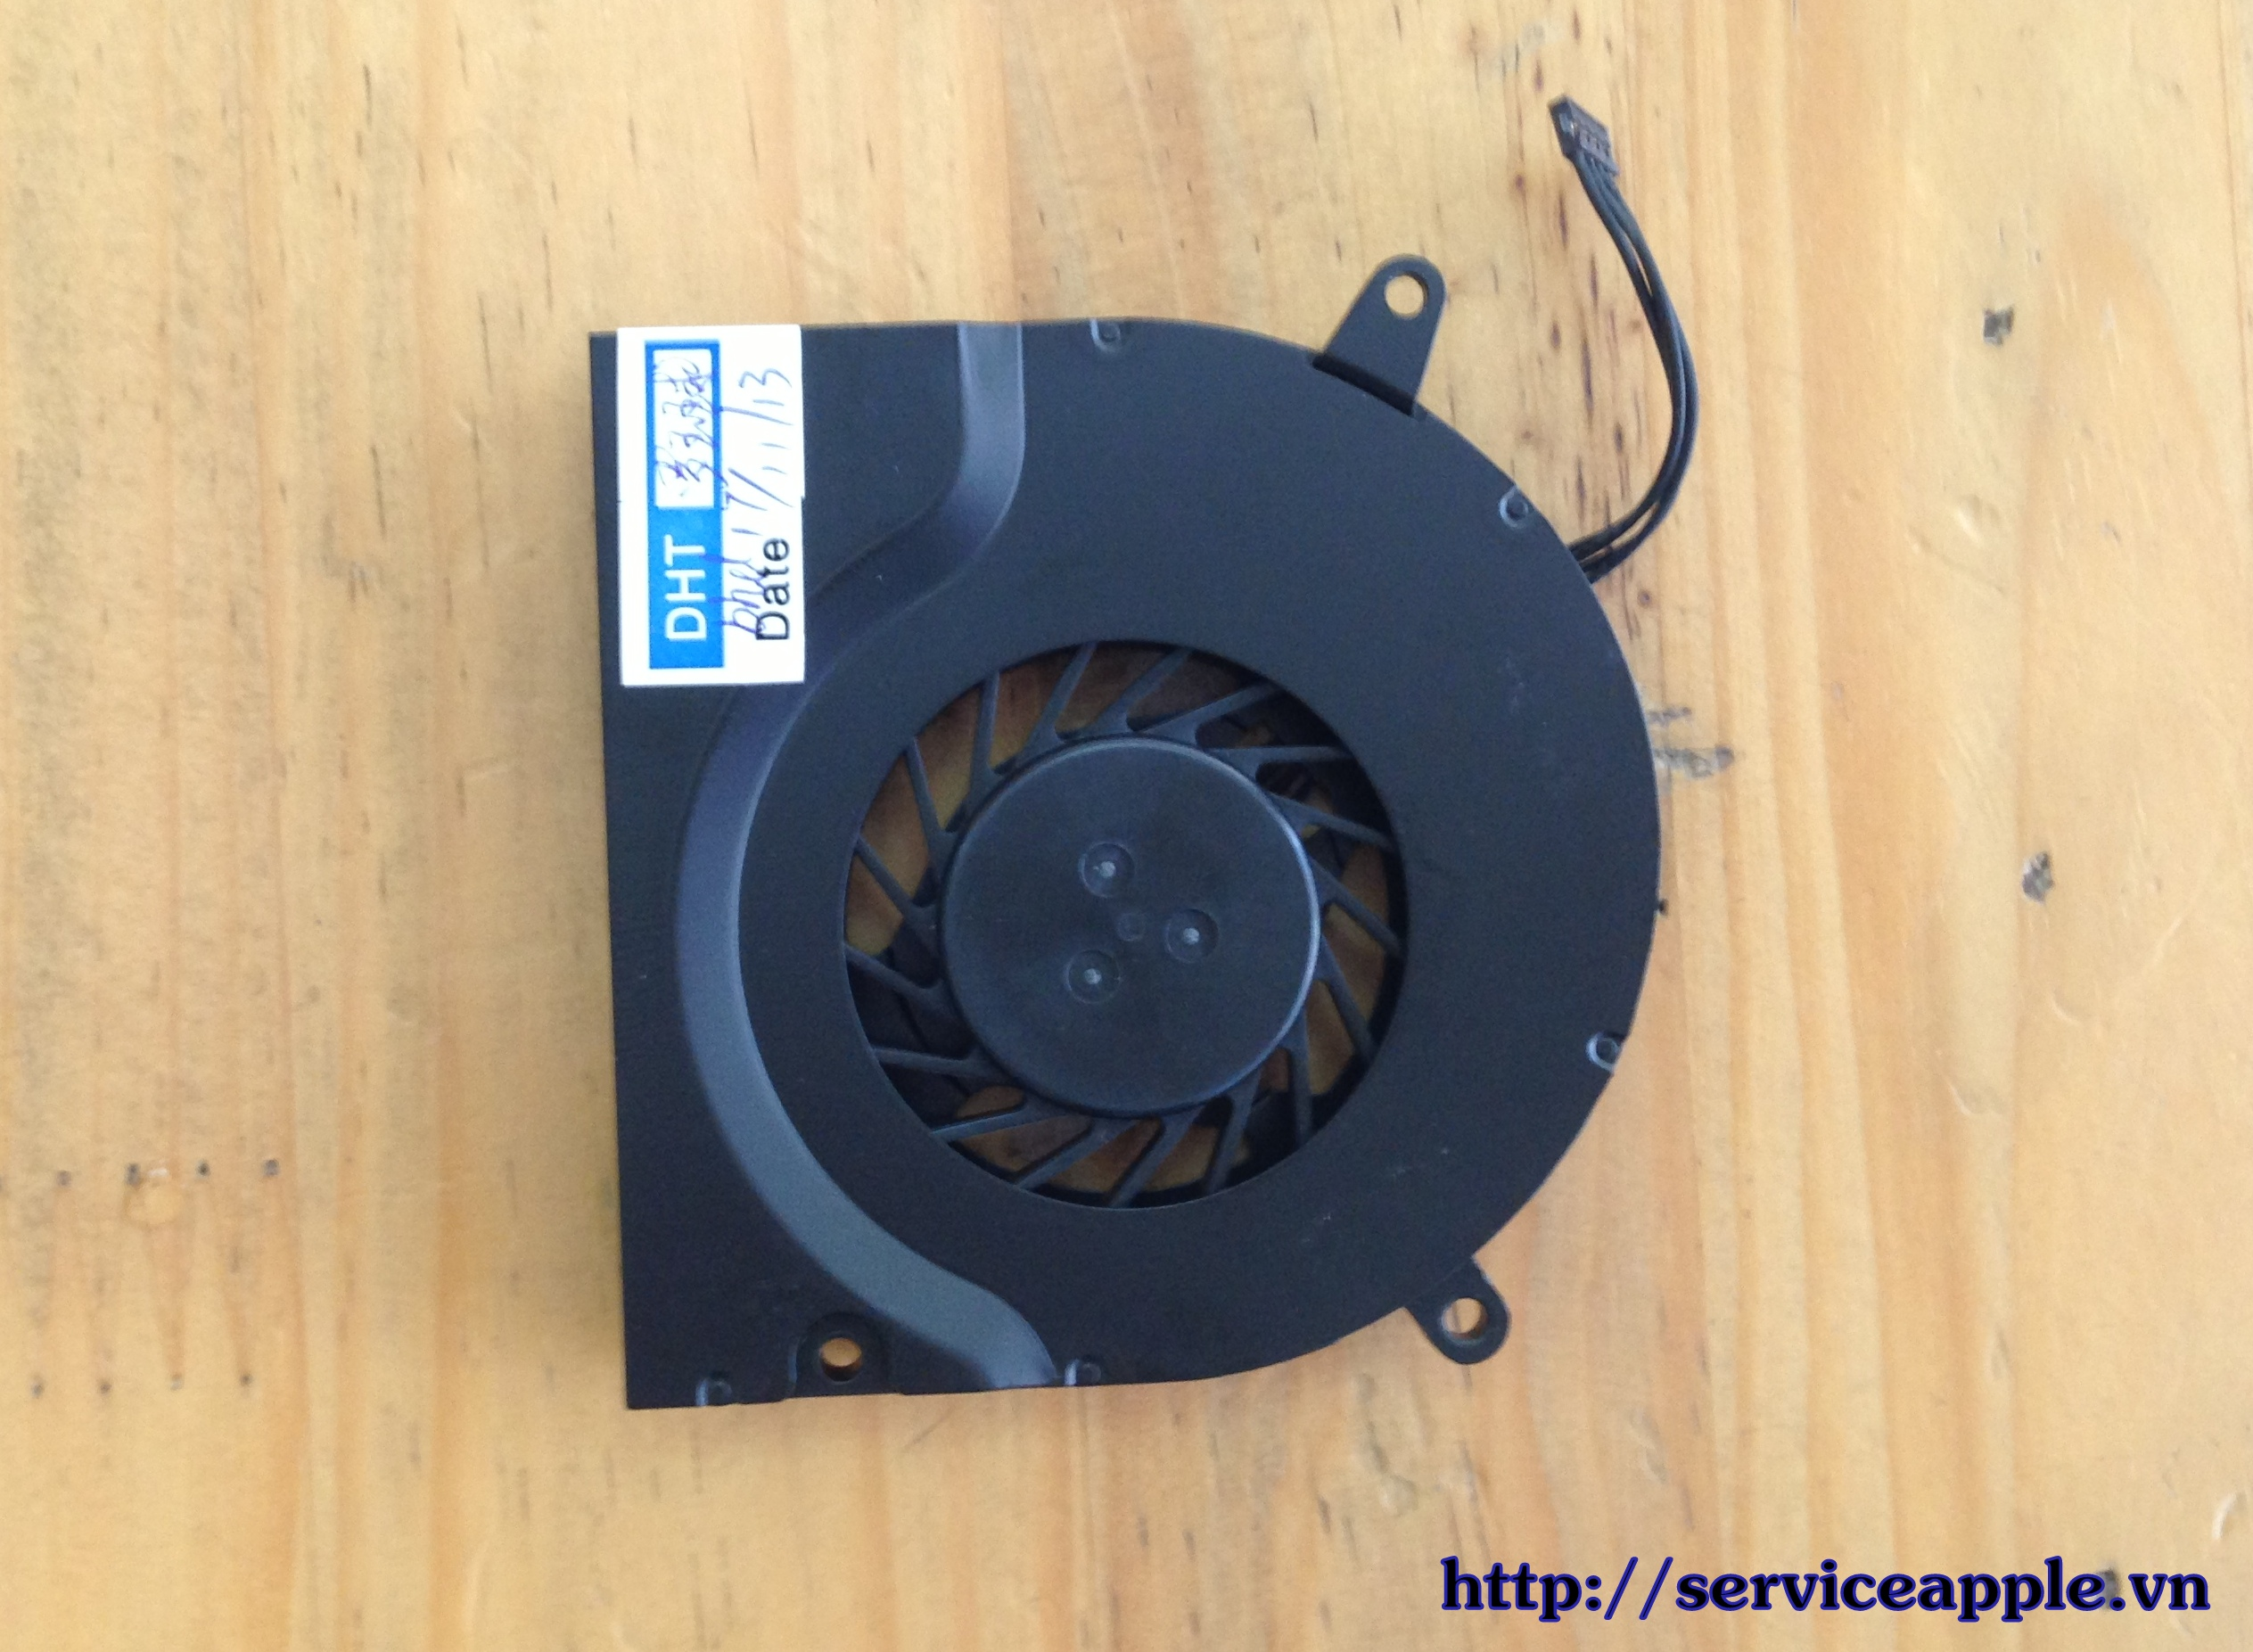 fan macbook pro a1278 2009 2010 2011 2012.JPG